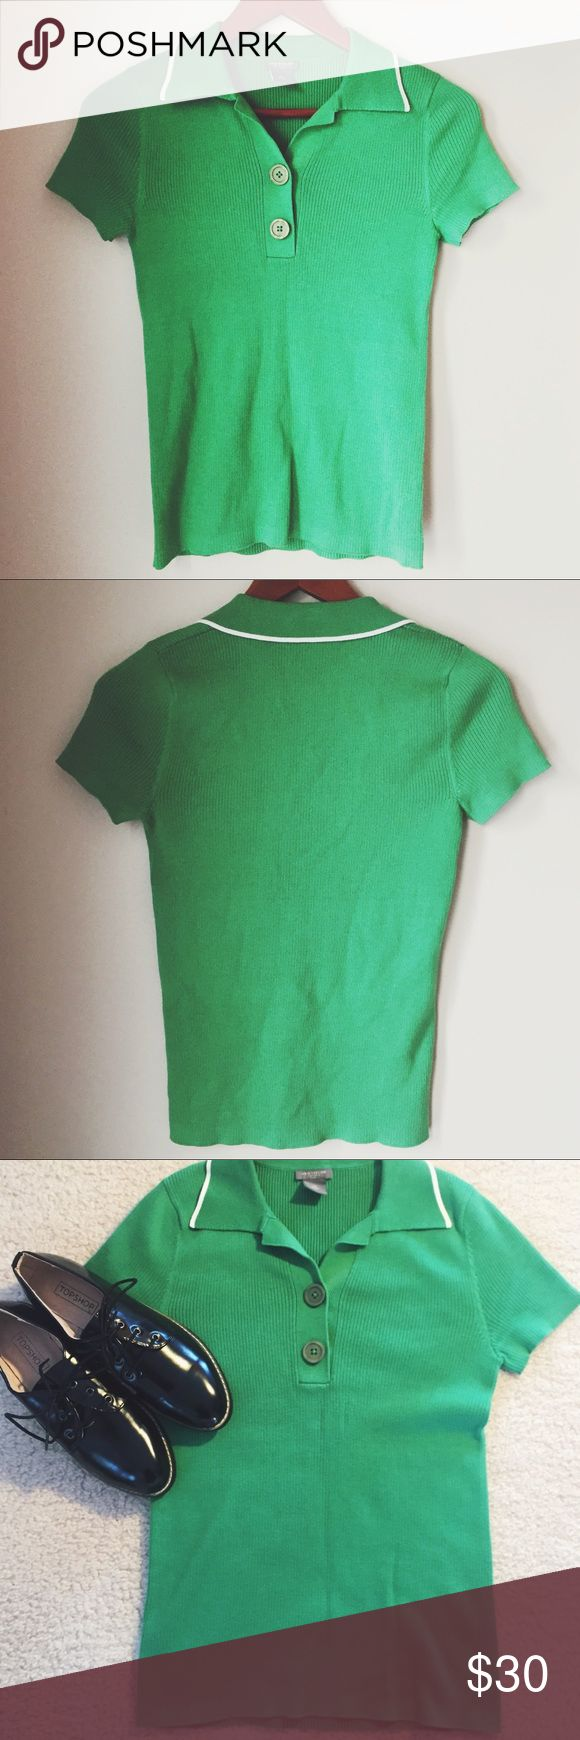 Ann Taylor Petites green knit polo ⋈ Beautiful kelly green color ⋈ Dress up or down ⋈ Purchased from Ann Taylor Loft ⋈ Size is Small PETITE ⋈ Price is negotiable! Ann Taylor Factory Tops Tees - Short Sleeve